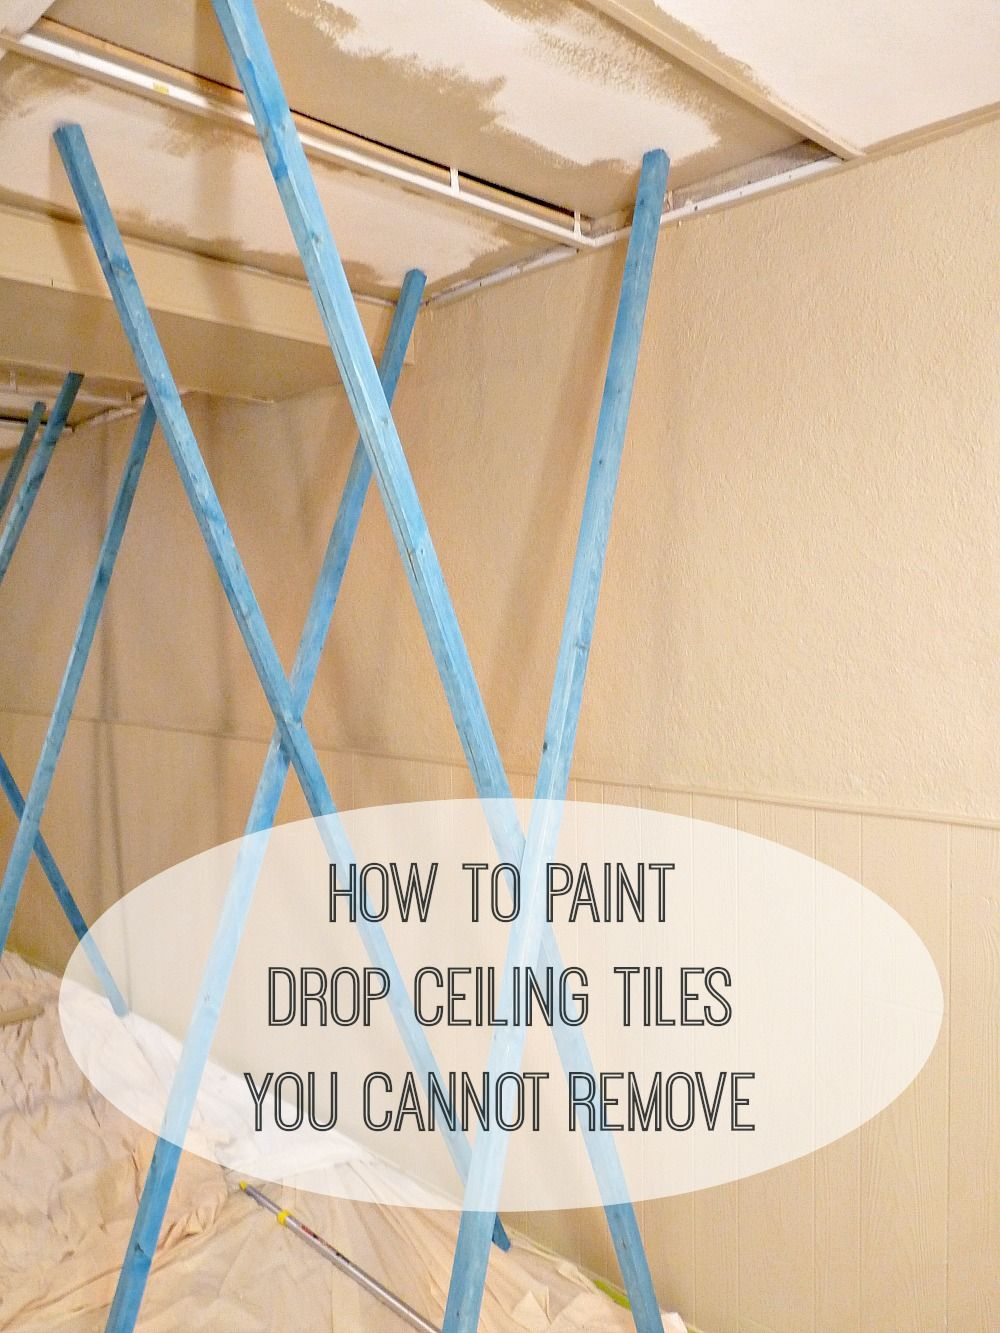 Basement update how to paint drop ceilings you cannot remove basement update how to paint drop ceilings you cannot remove doublecrazyfo Image collections